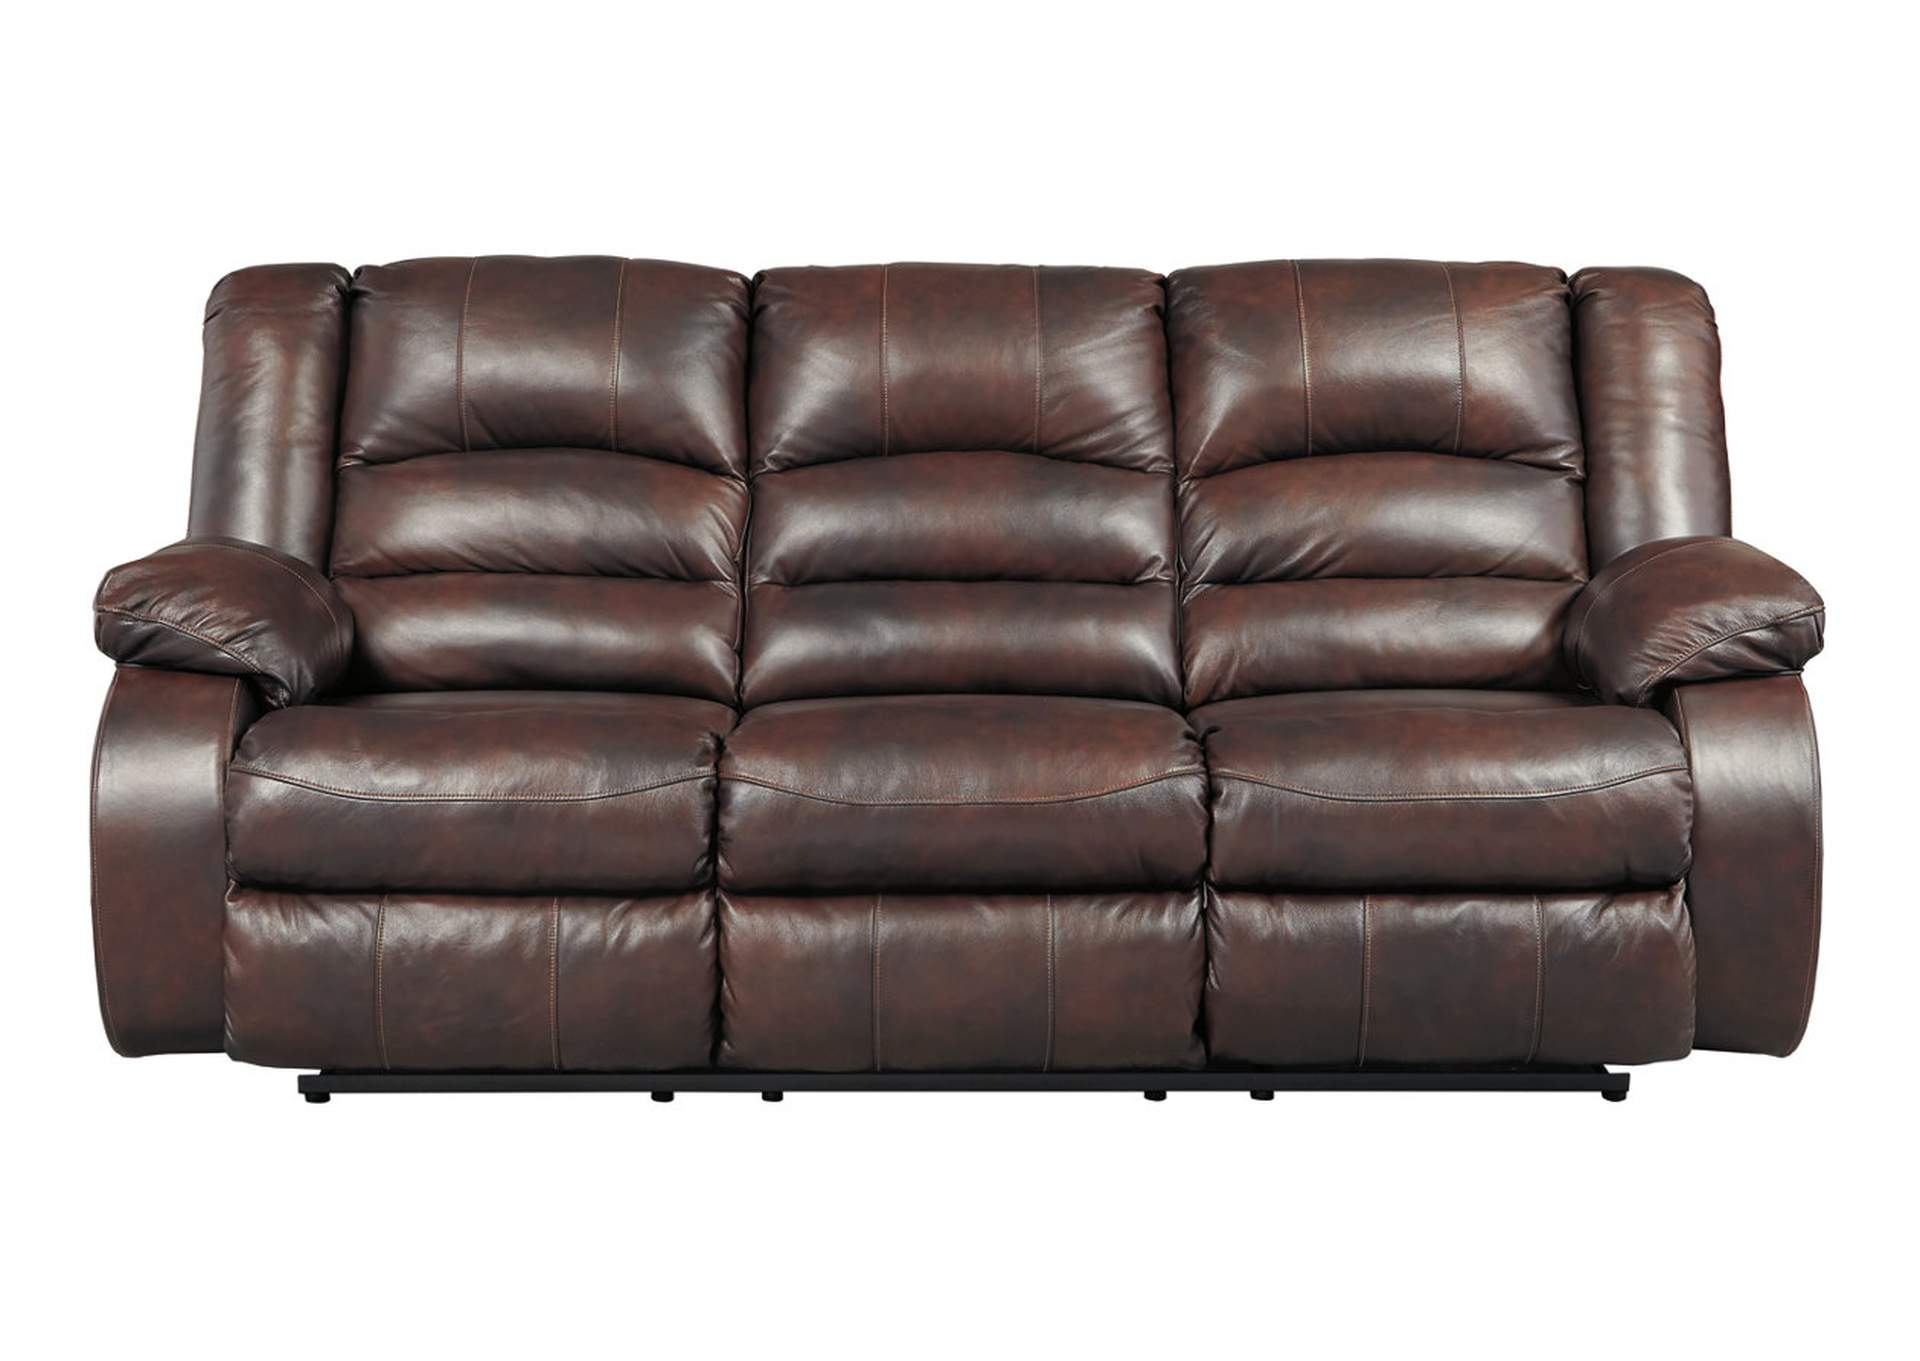 Levelland Cafe Power Reclining Sofa,Signature Design By Ashley